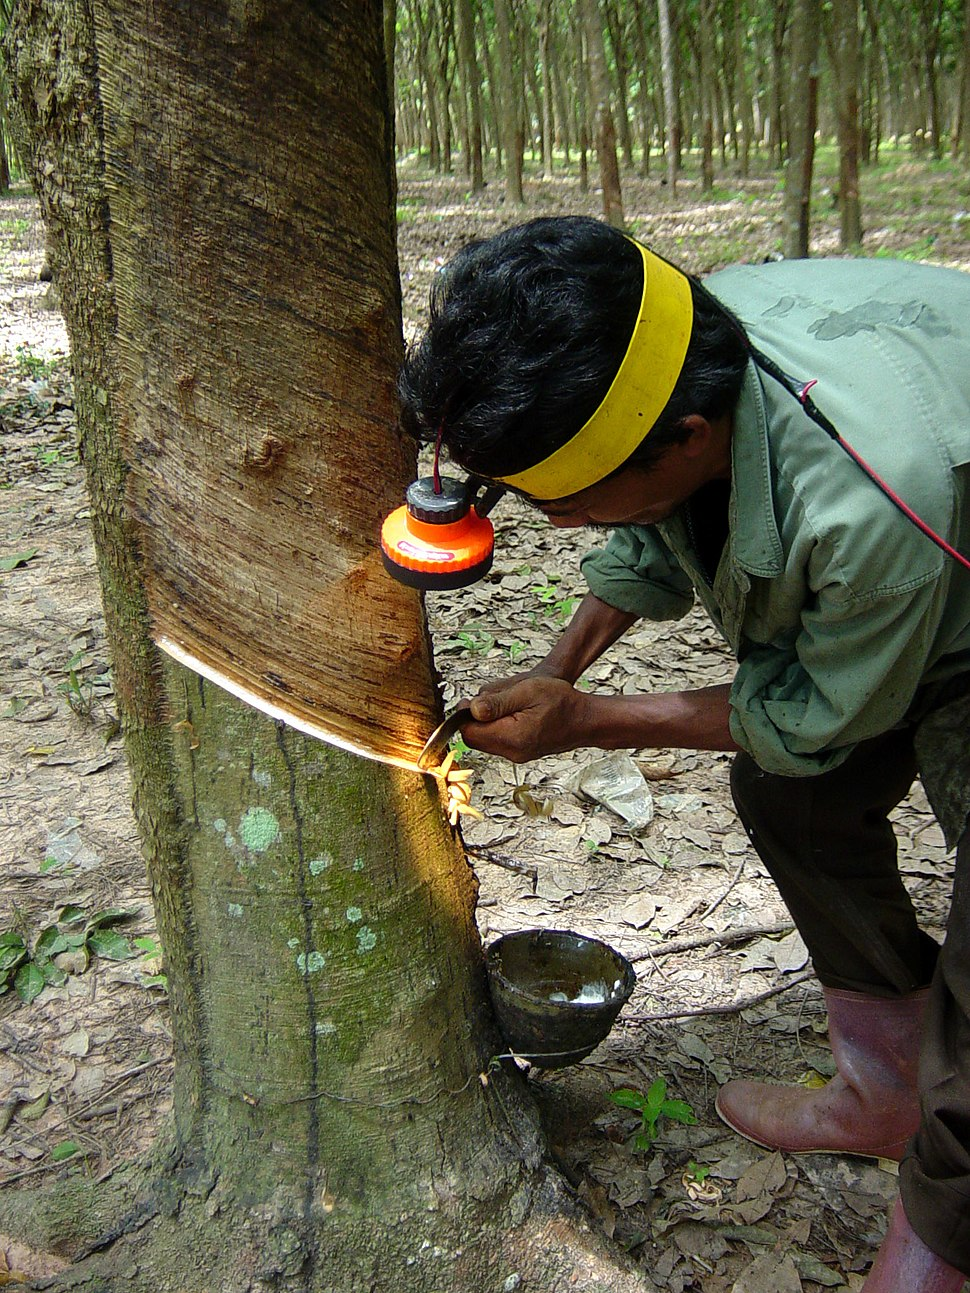 Tapping a rubber tree in Thailand